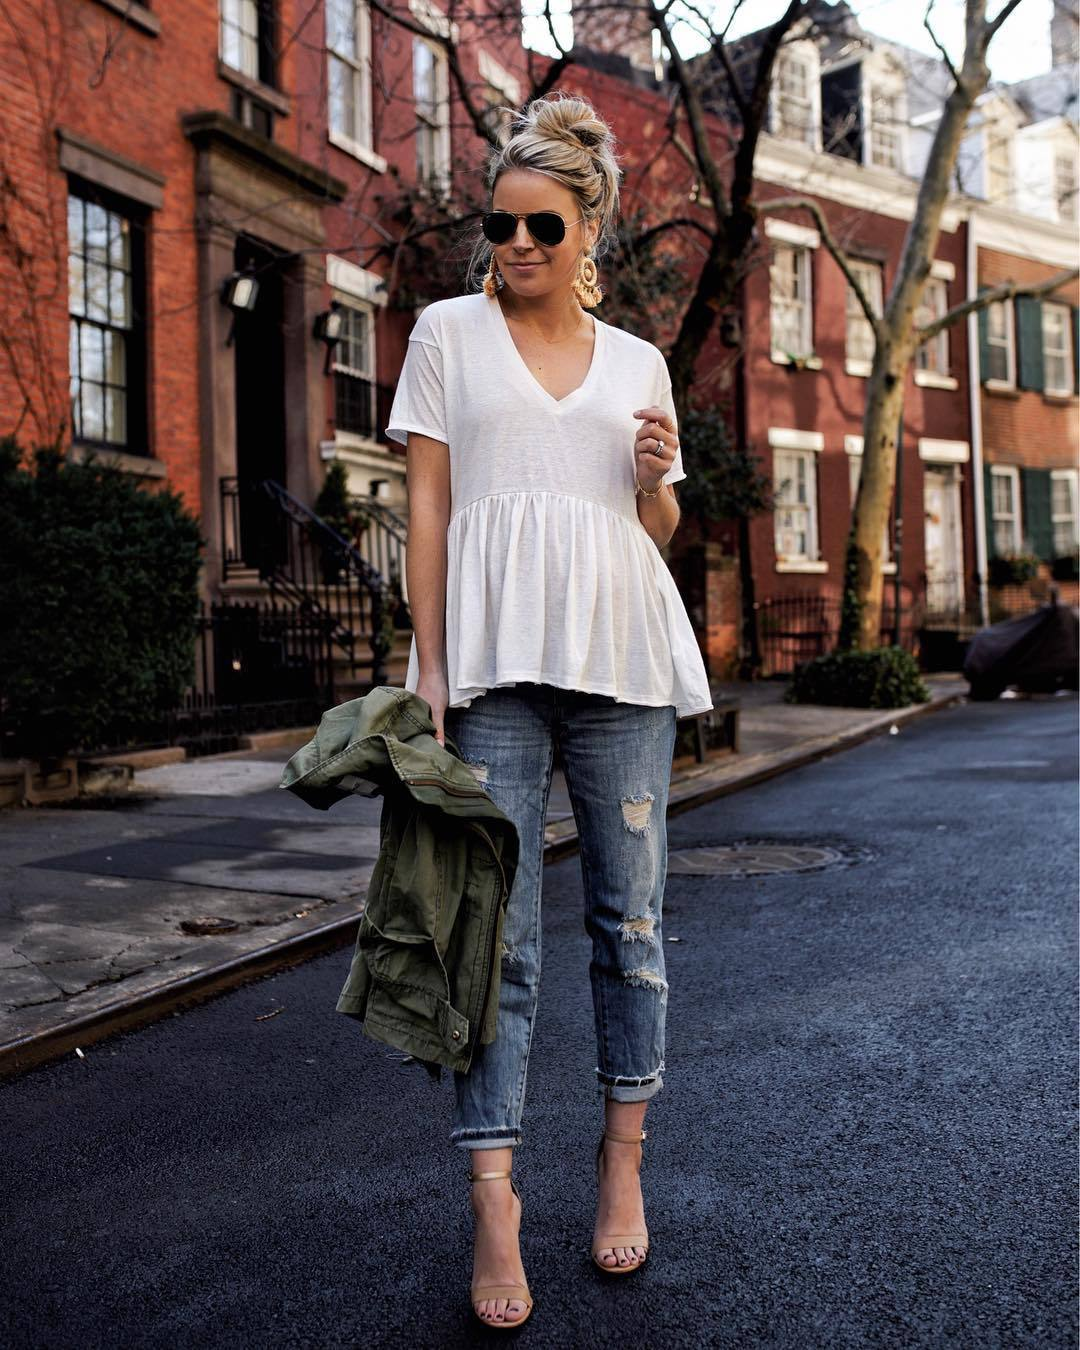 top white top high heel sandals boyfriend jeans ripped jeans army green jacket earrings sunglasses streetstyle casual